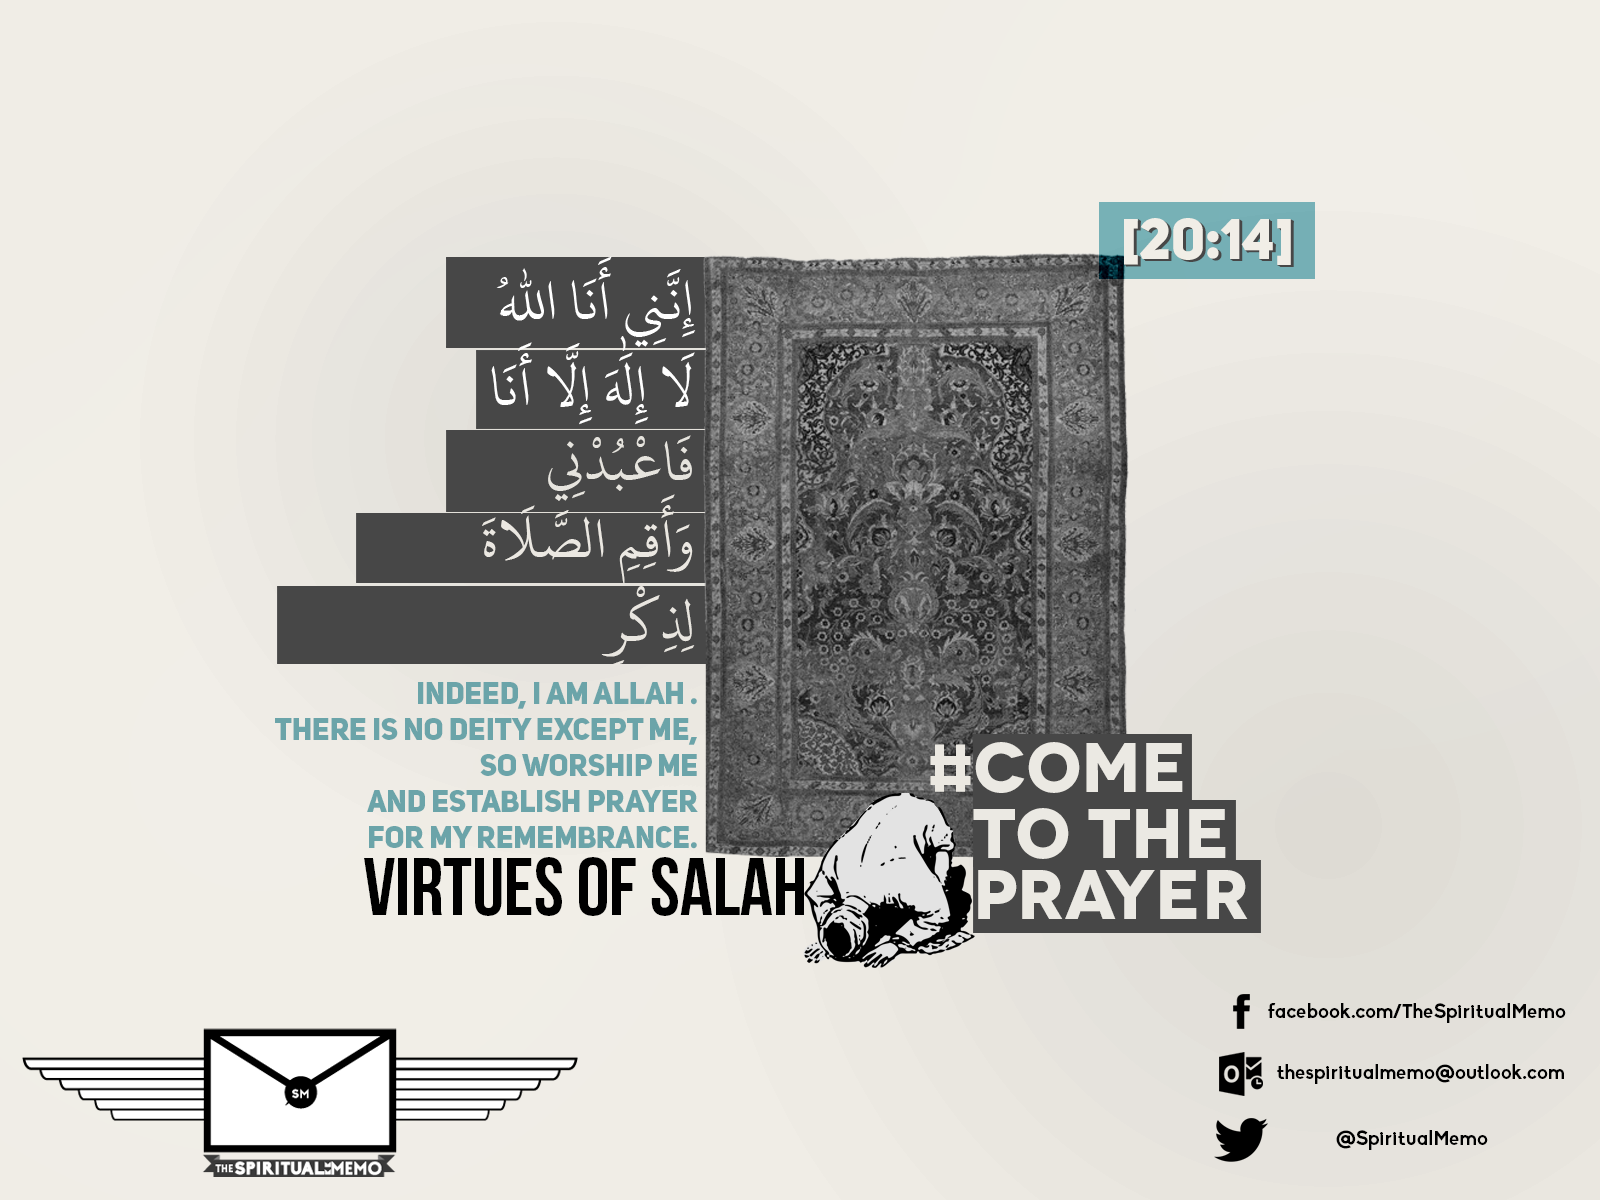 Virtues of Salah